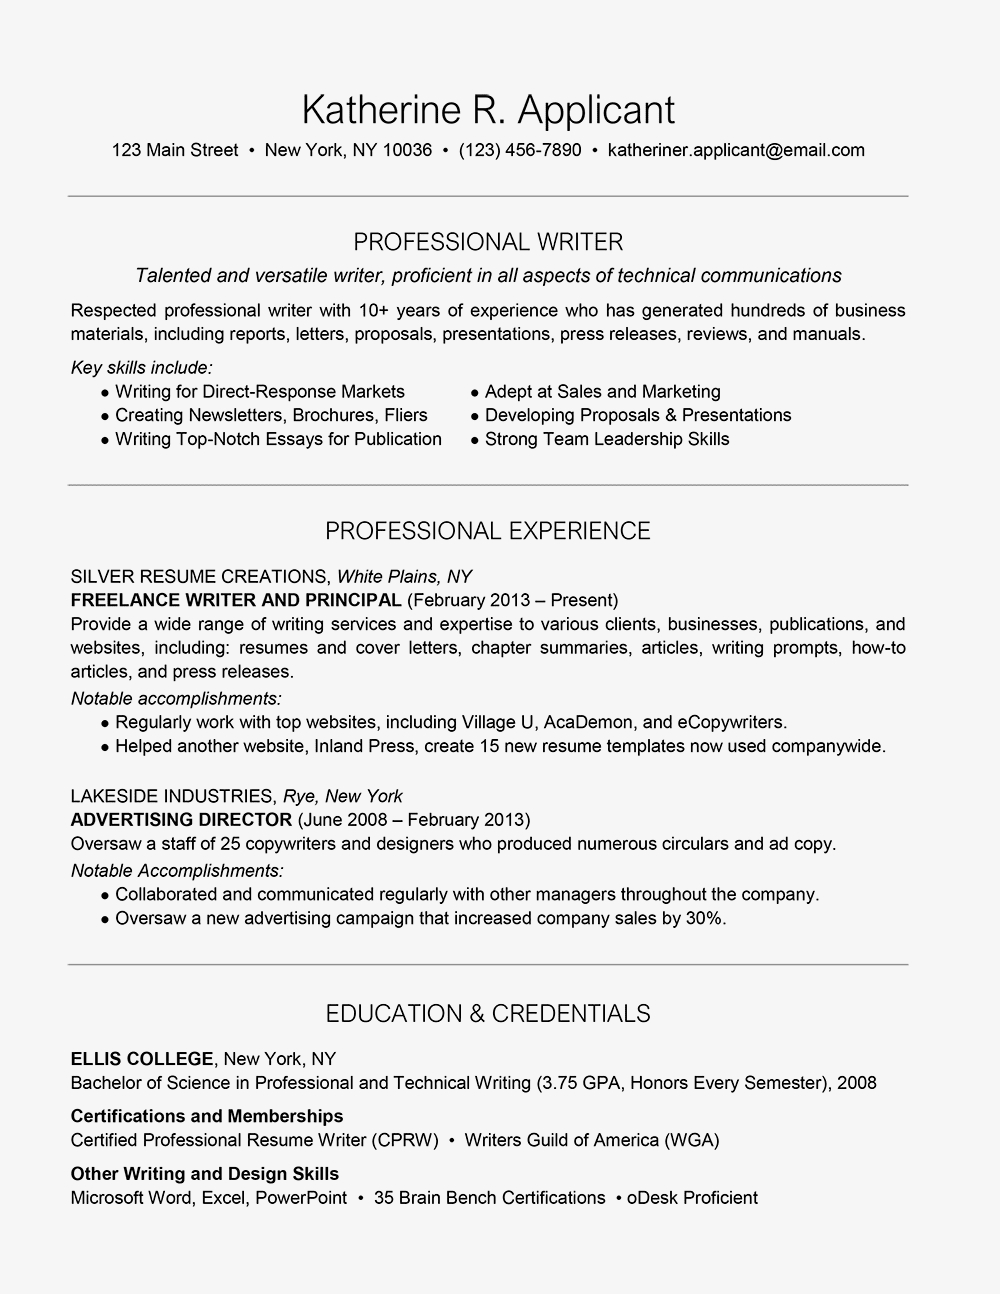 Resume Professional Writers Reviews - Professional Writer Resume Example and Writing Tips